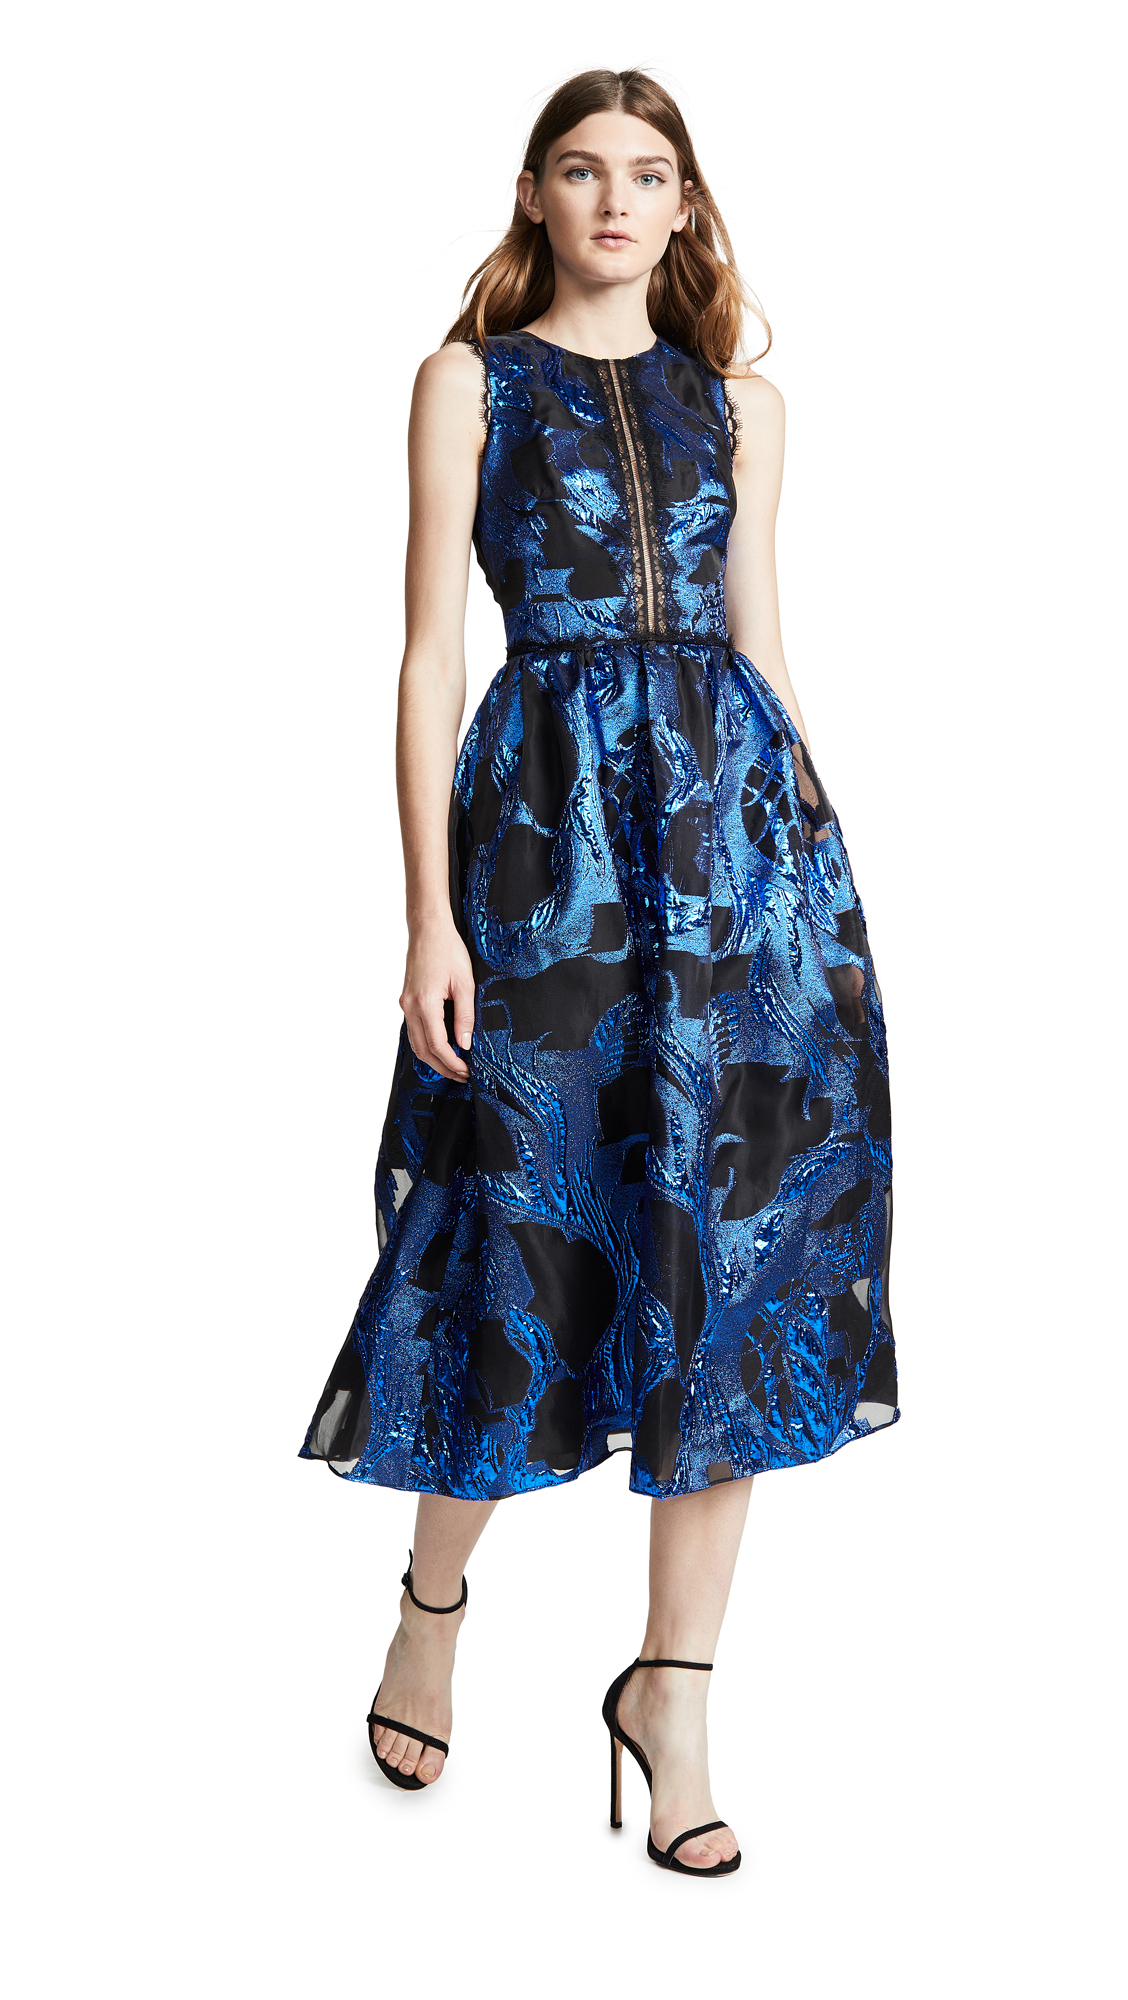 Marchesa Notte Sleeveless Metallic Fils Coupe Cocktail Dress In Royal